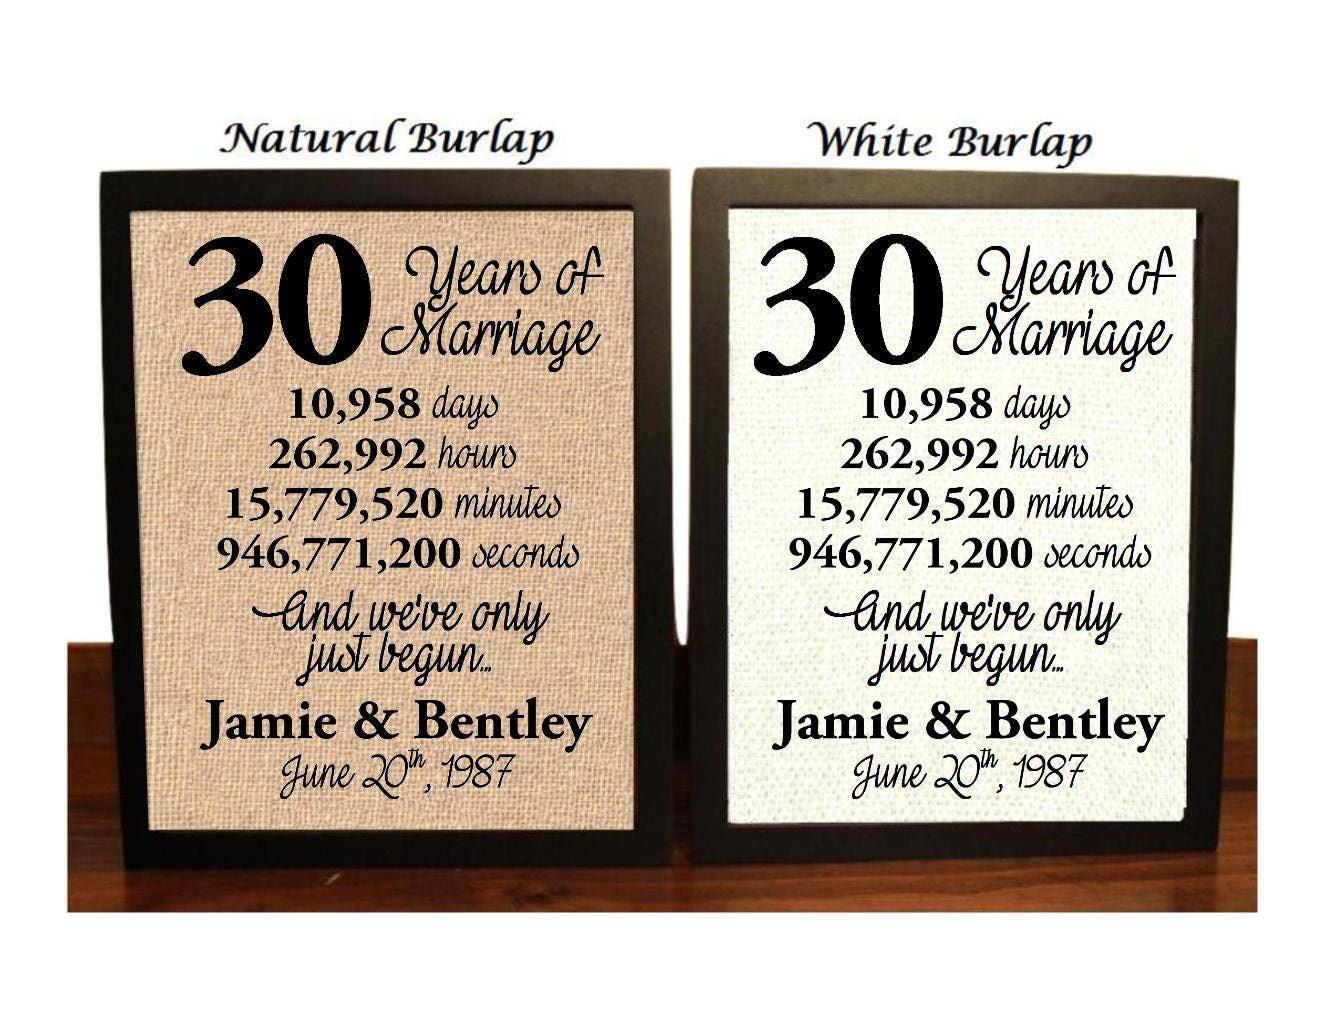 What Is The 30th Wedding Anniversary Gift: 30th Wedding Anniversary 30 Year Wedding Anniversary 30th